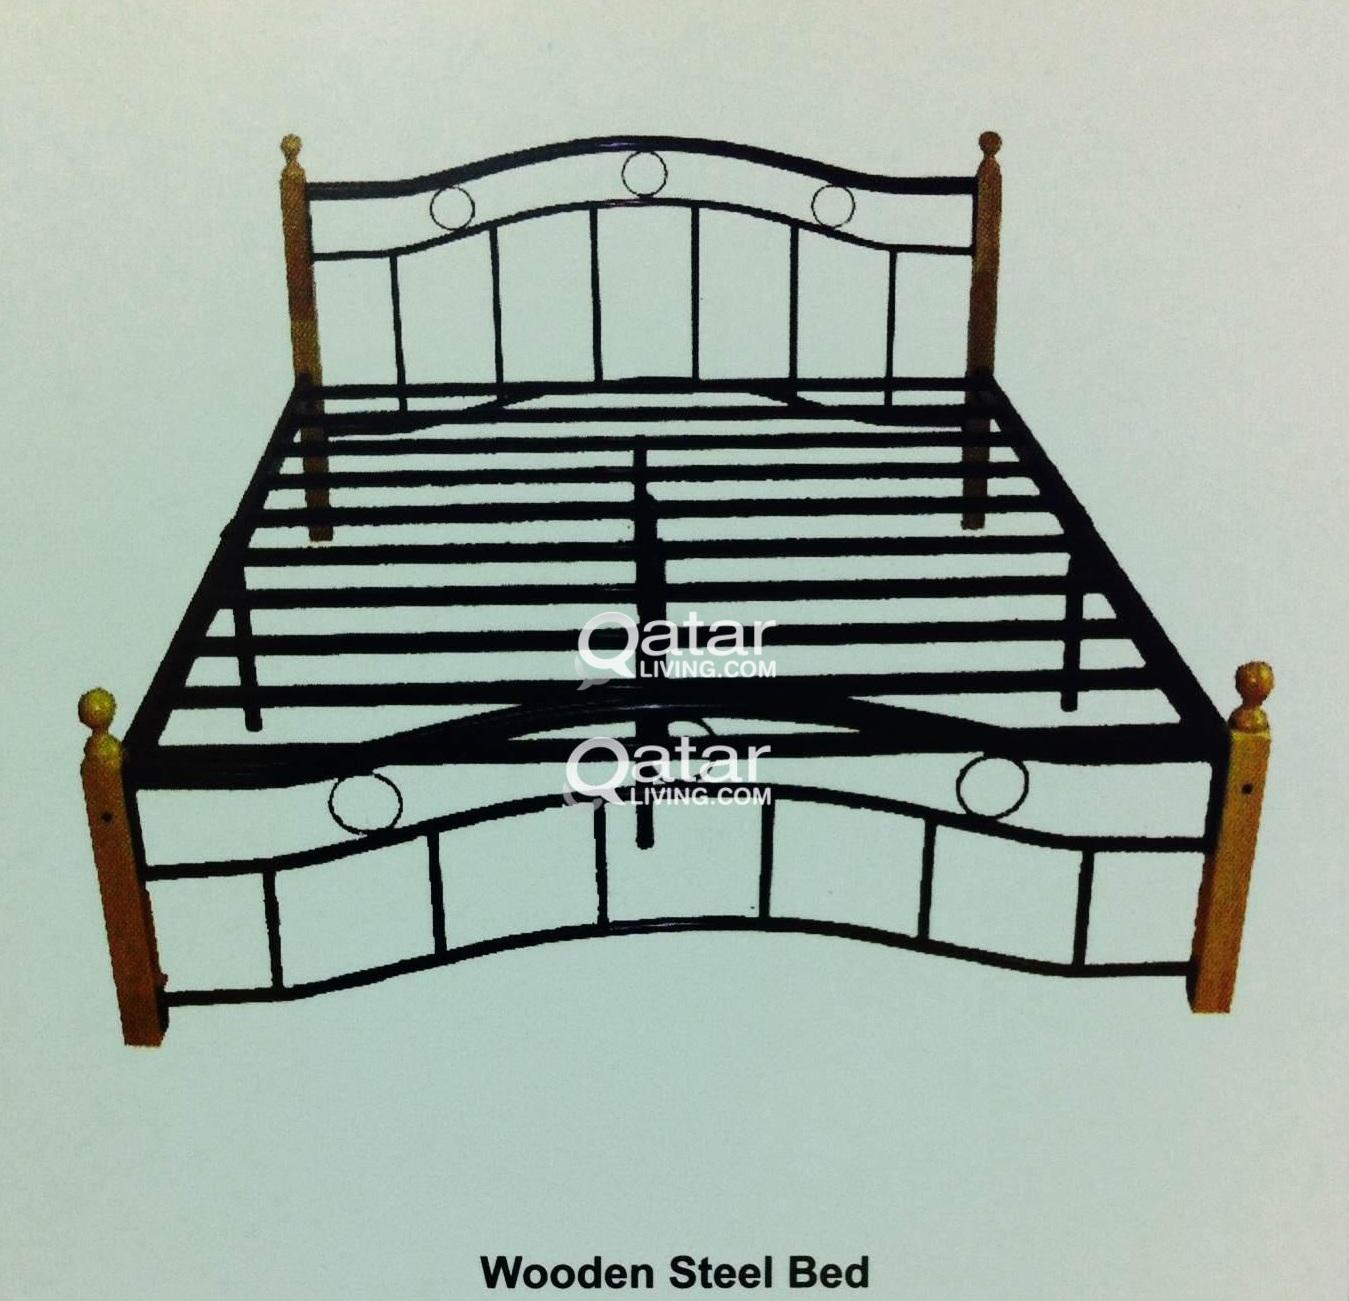 Bed 120 X 190 Wooden Steel Bed 120x 190 With Mattress Qatar Living